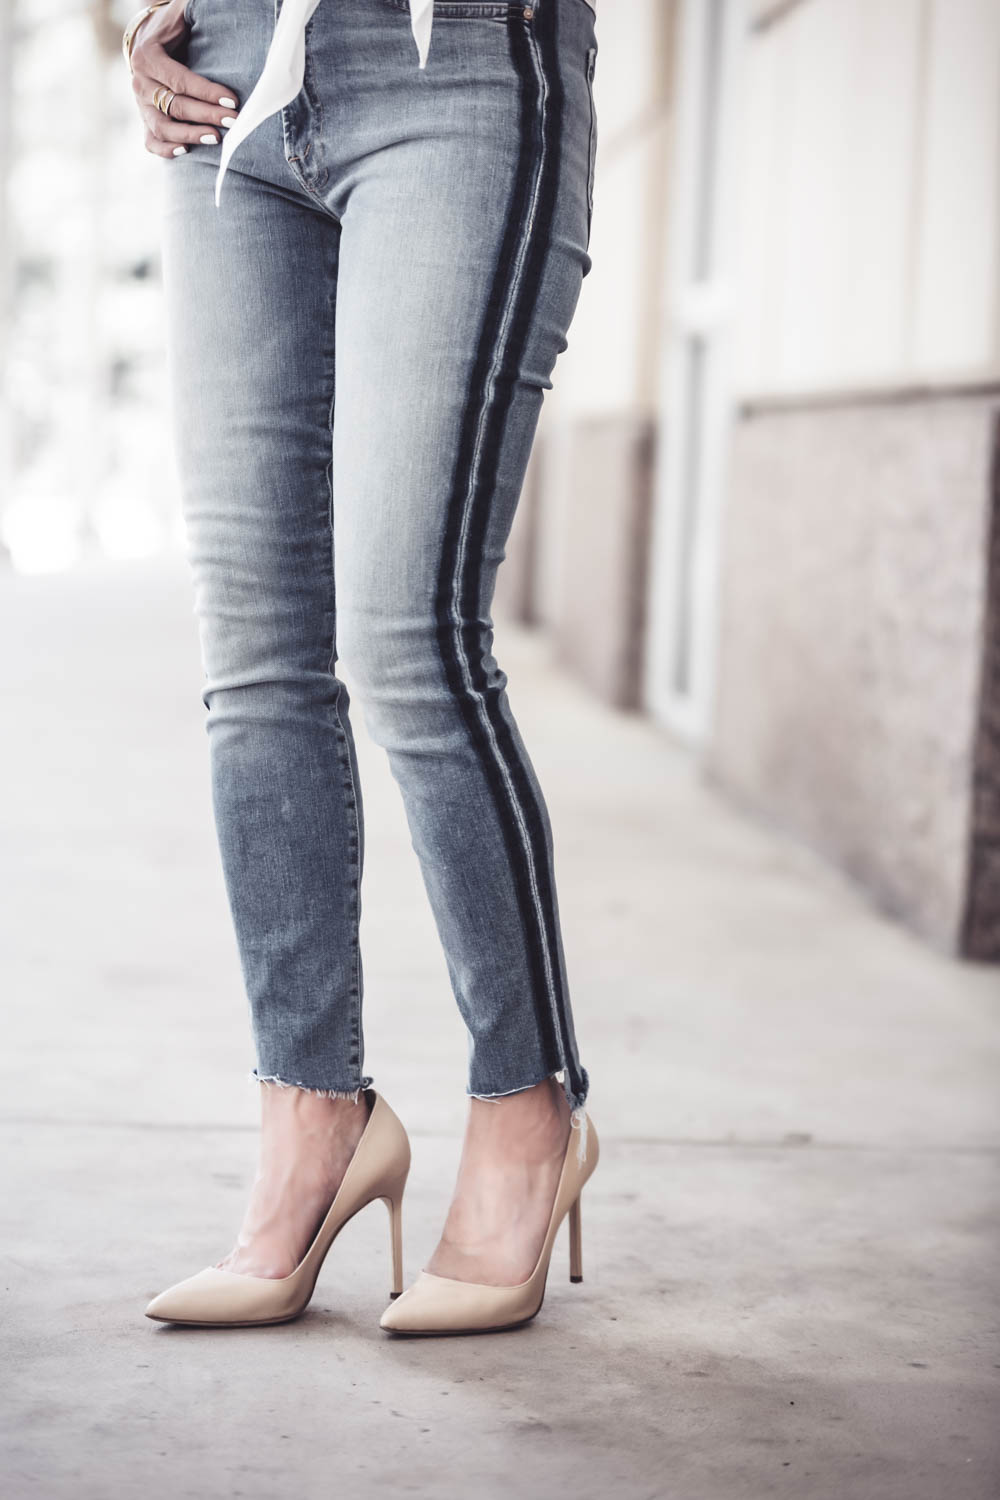 Mother Denim, Mother jeans in stunner ankle fray in kitty racing stripe, Awesome jeans! High rise with a step hem, VERY slimming and elongating